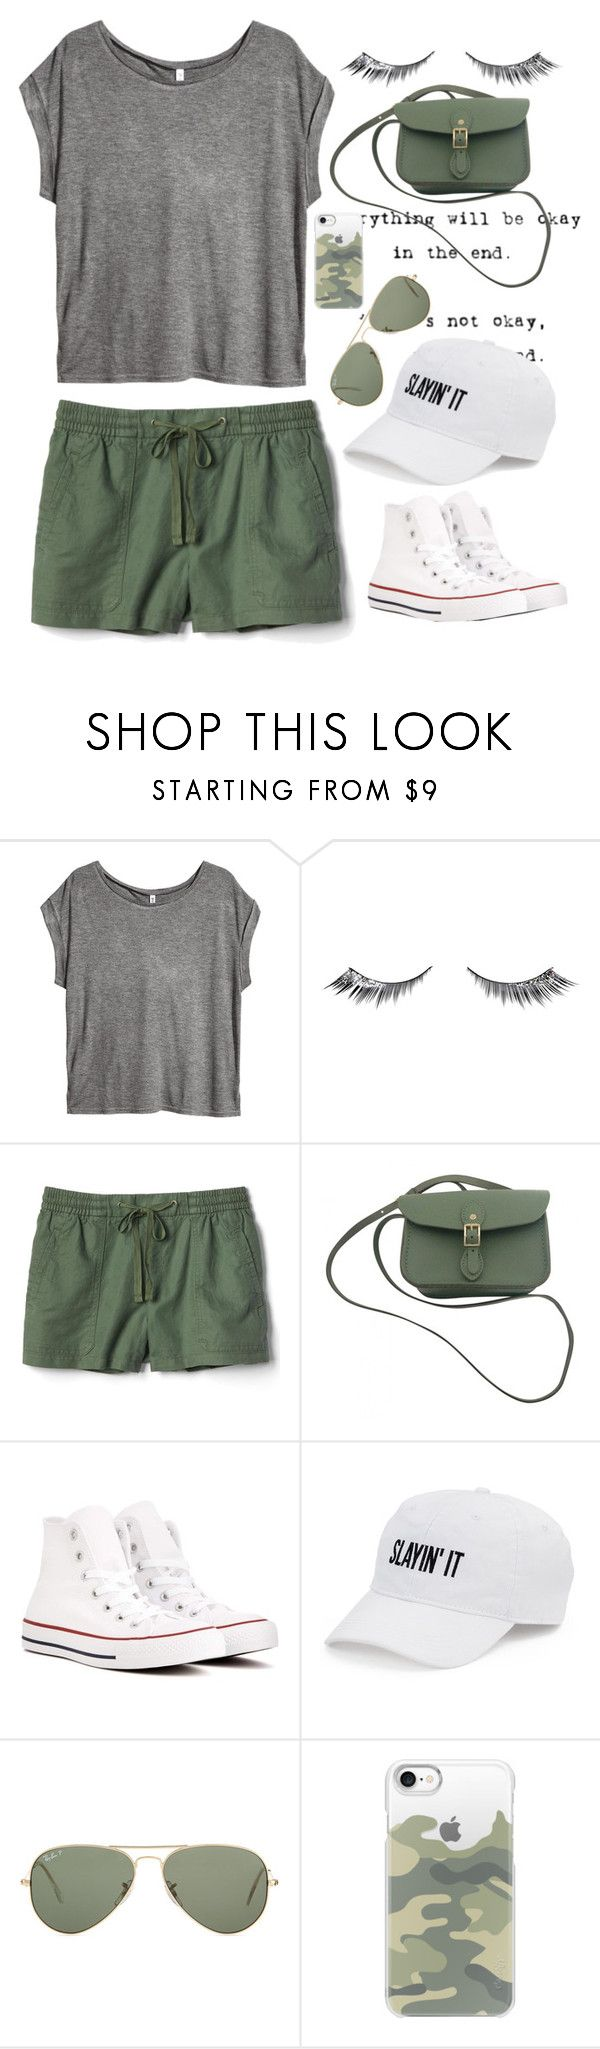 """""""Army Green"""" by pinkrasberry ❤ liked on Polyvore featuring H&M, Urban Decay, Gap, The Cambridge Satchel Company, Converse, SO, Ray-Ban and Casetify"""